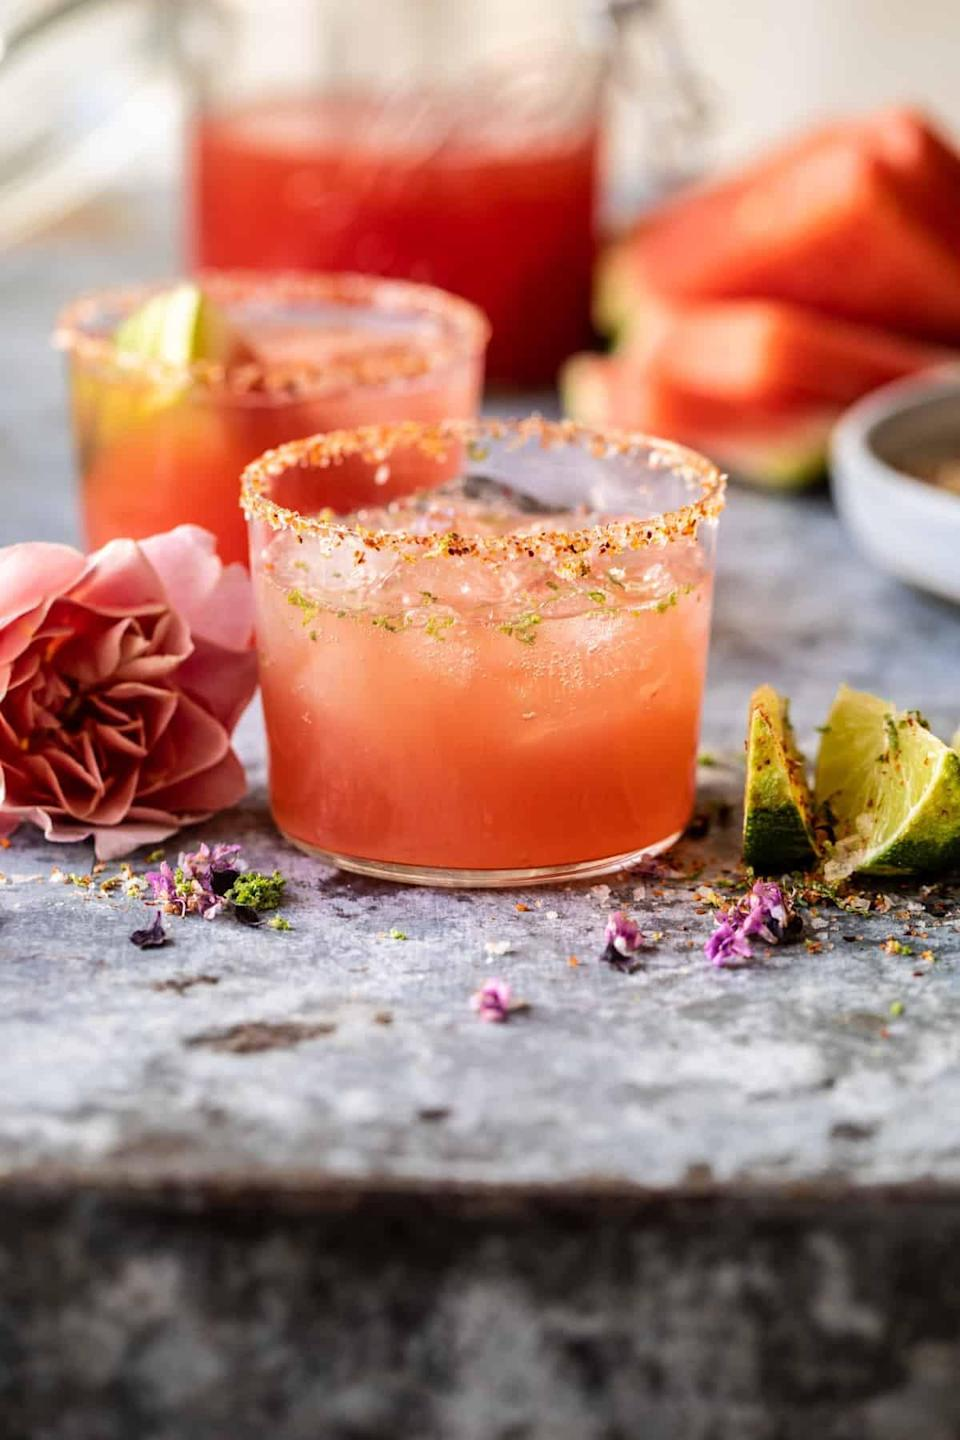 """<p>Californians know what's good, especially when it comes to cocktails. These fun-filled palomas include fresh watermelon juice, tequila mixed with lime juice, sweet Rosè wine, and a dash of sparkling water. Finish this cocktail off with a chili rim for best results.</p> <p><strong>Get the recipe</strong>: <a href=""""https://www.popsugar.com/buy?url=https%3A%2F%2Fwww.halfbakedharvest.com%2Fwatermelon-rose-paloma%2F&p_name=watermelon%20Ros%C3%A8%20paloma&retailer=halfbakedharvest.com&evar1=yum%3Aus&evar9=47471653&evar98=https%3A%2F%2Fwww.popsugar.com%2Ffood%2Fphoto-gallery%2F47471653%2Fimage%2F47473186%2FCalifornia-Paloma&list1=cocktails%2Cdrinks%2Calcohol%2Crecipes&prop13=api&pdata=1"""" class=""""link rapid-noclick-resp"""" rel=""""nofollow noopener"""" target=""""_blank"""" data-ylk=""""slk:watermelon Rosè paloma"""">watermelon Rosè paloma</a></p>"""